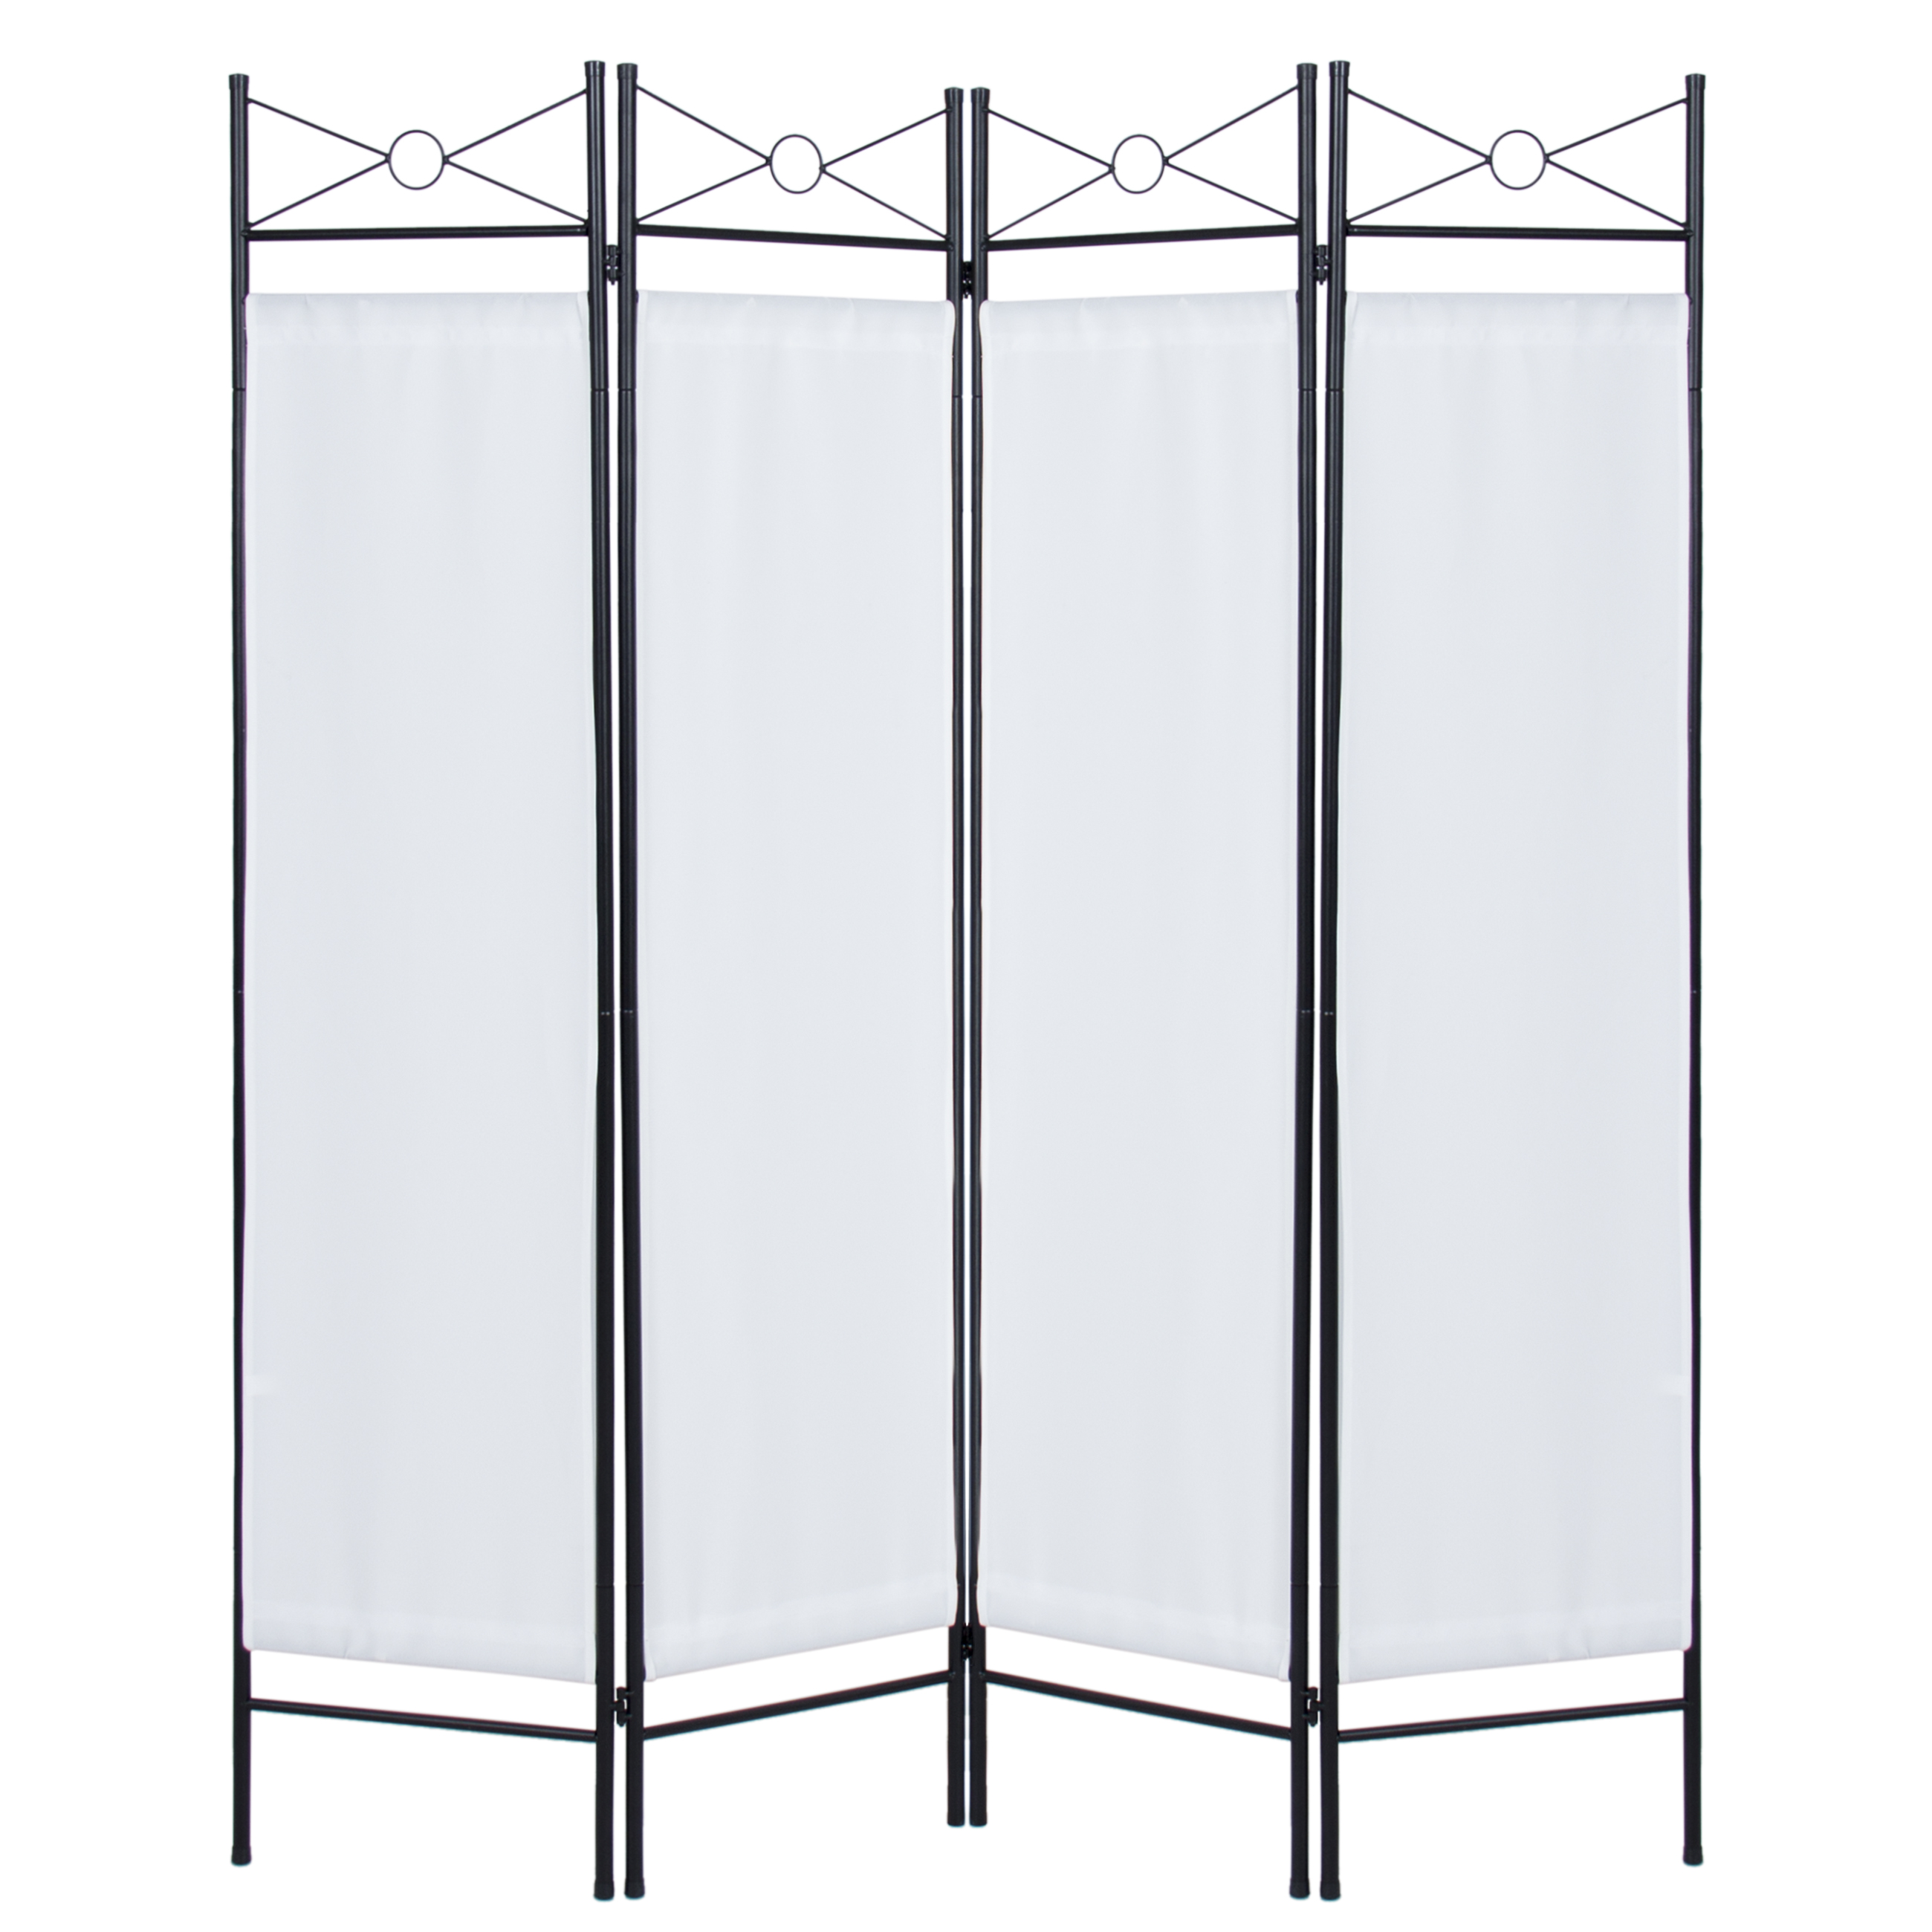 Best Choice Products 6ft 4 Panel Folding Privacy Screen Room Divider Decoration Accent For Bedroom Living Office W Steel Frame White